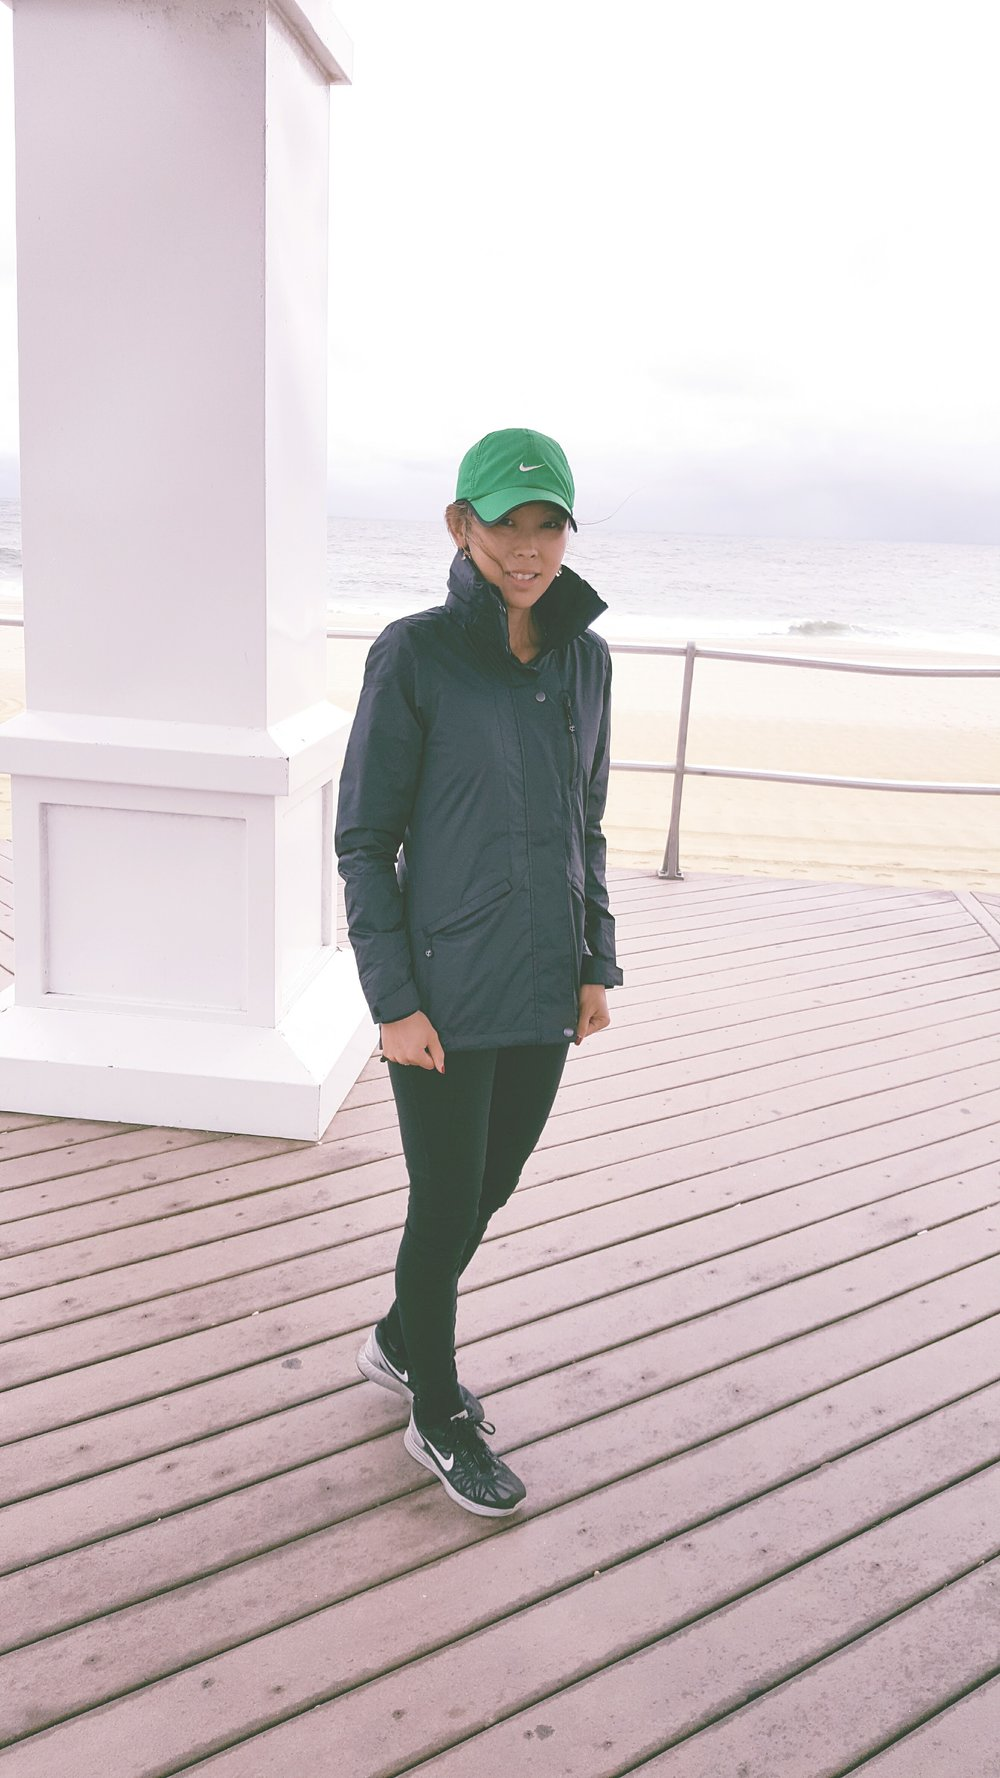 Thank you Crane&Lion for coming up with such a stylish and functional water-resistant rain jacket!  To Purchase, go to http://craneandlion.com/  Your first purchase is 20% off